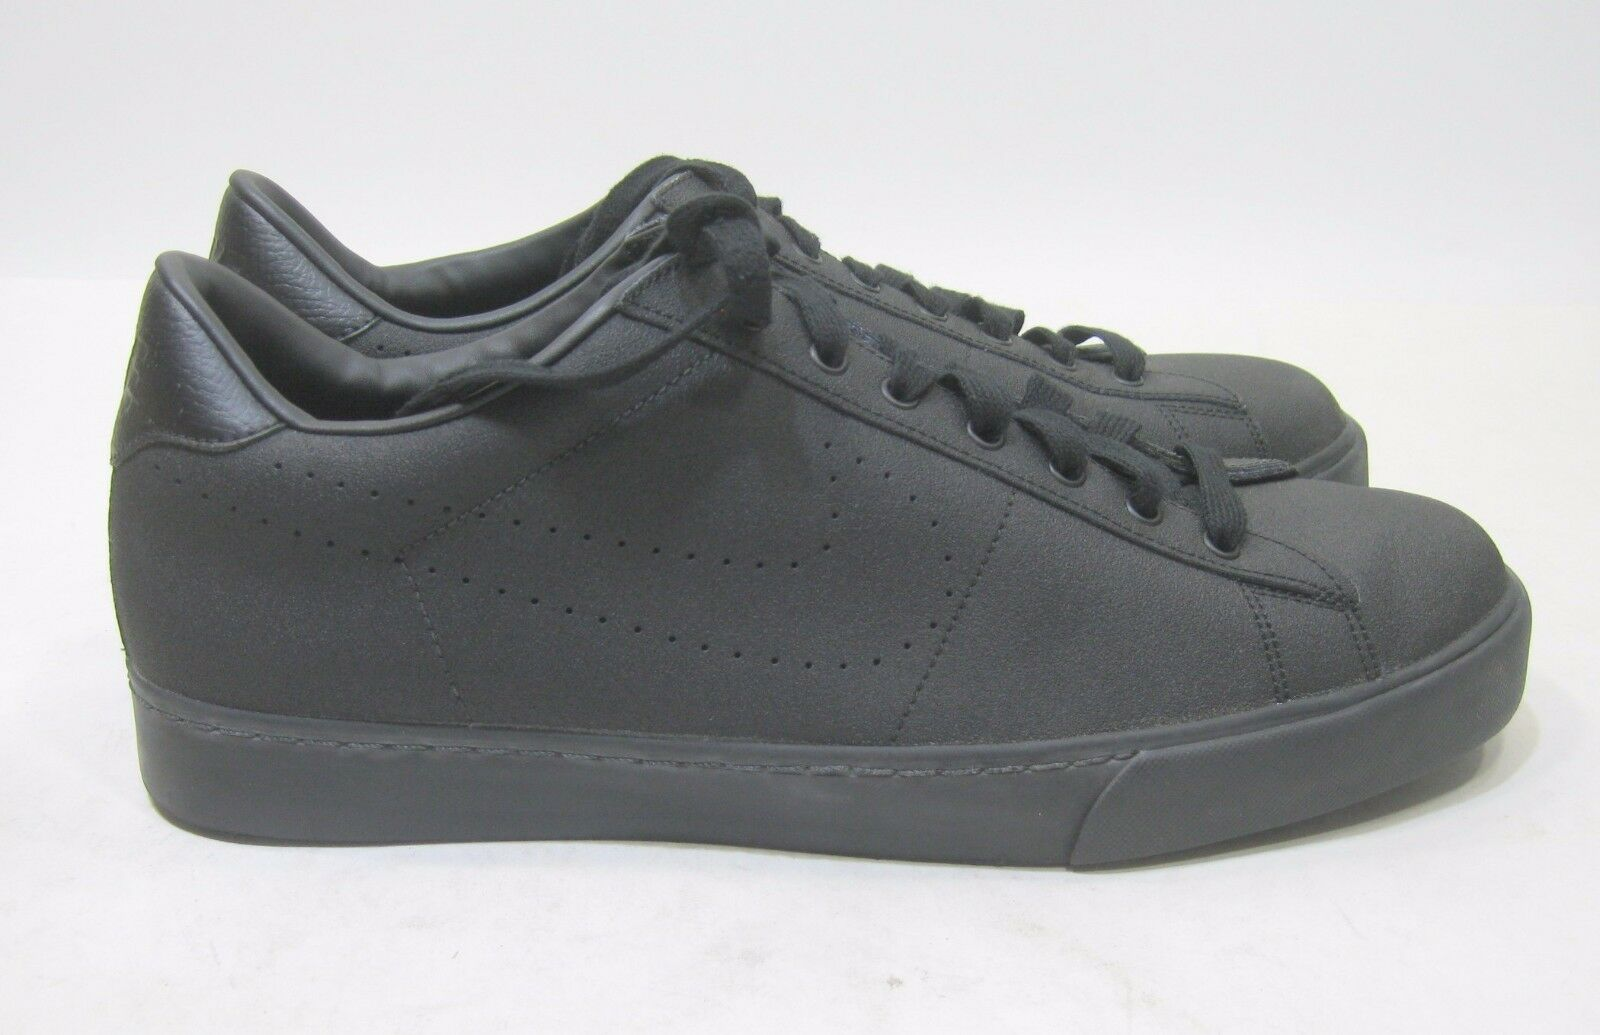 New Nike Navaro Low Lifestyle shoes Black 484298 002 Size 13